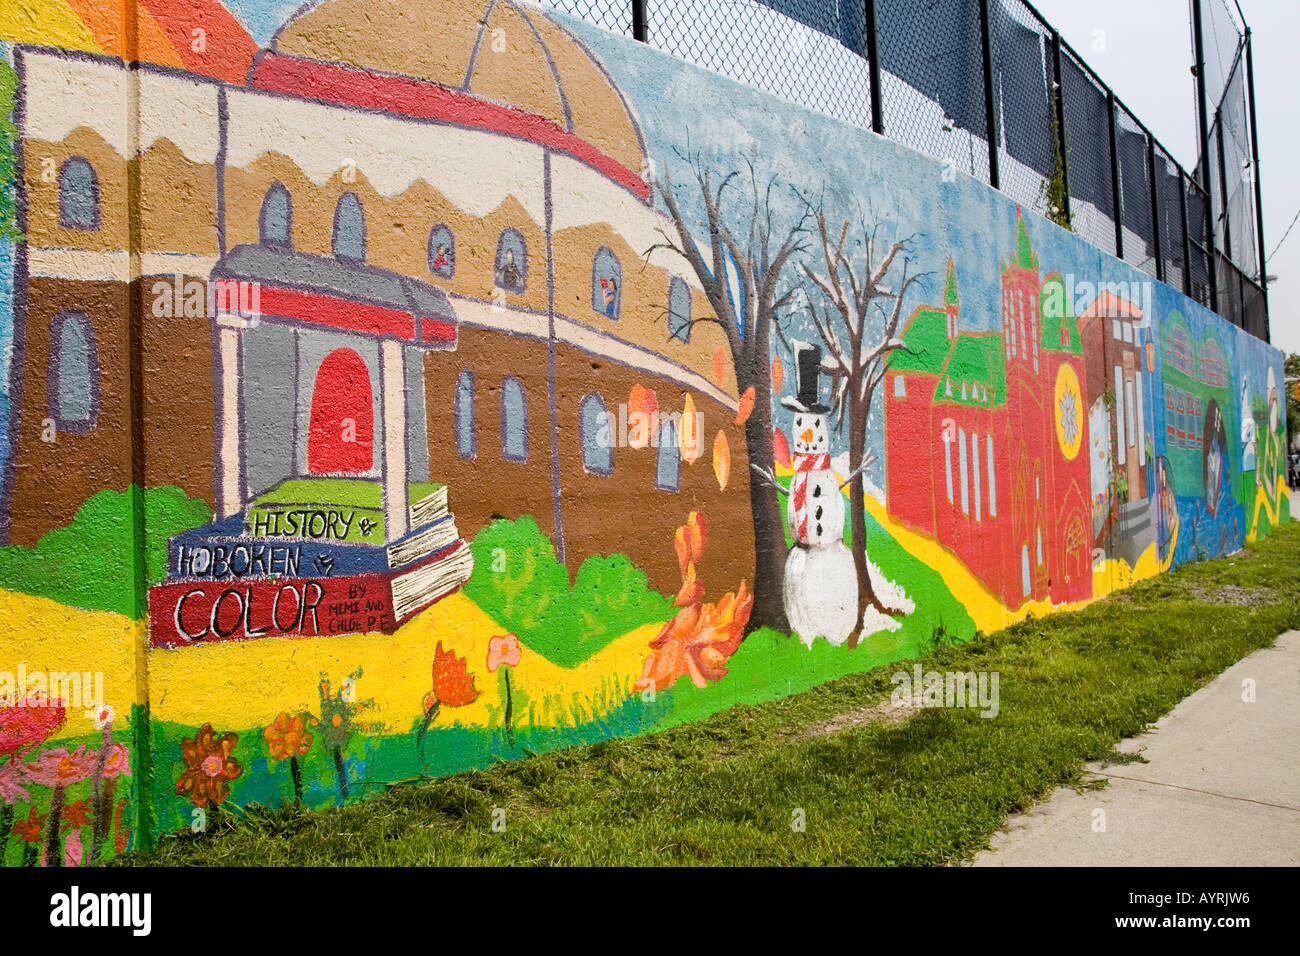 Community section of the 150 year history mural in Hoboken, New Jersey, USA. - Stock Image